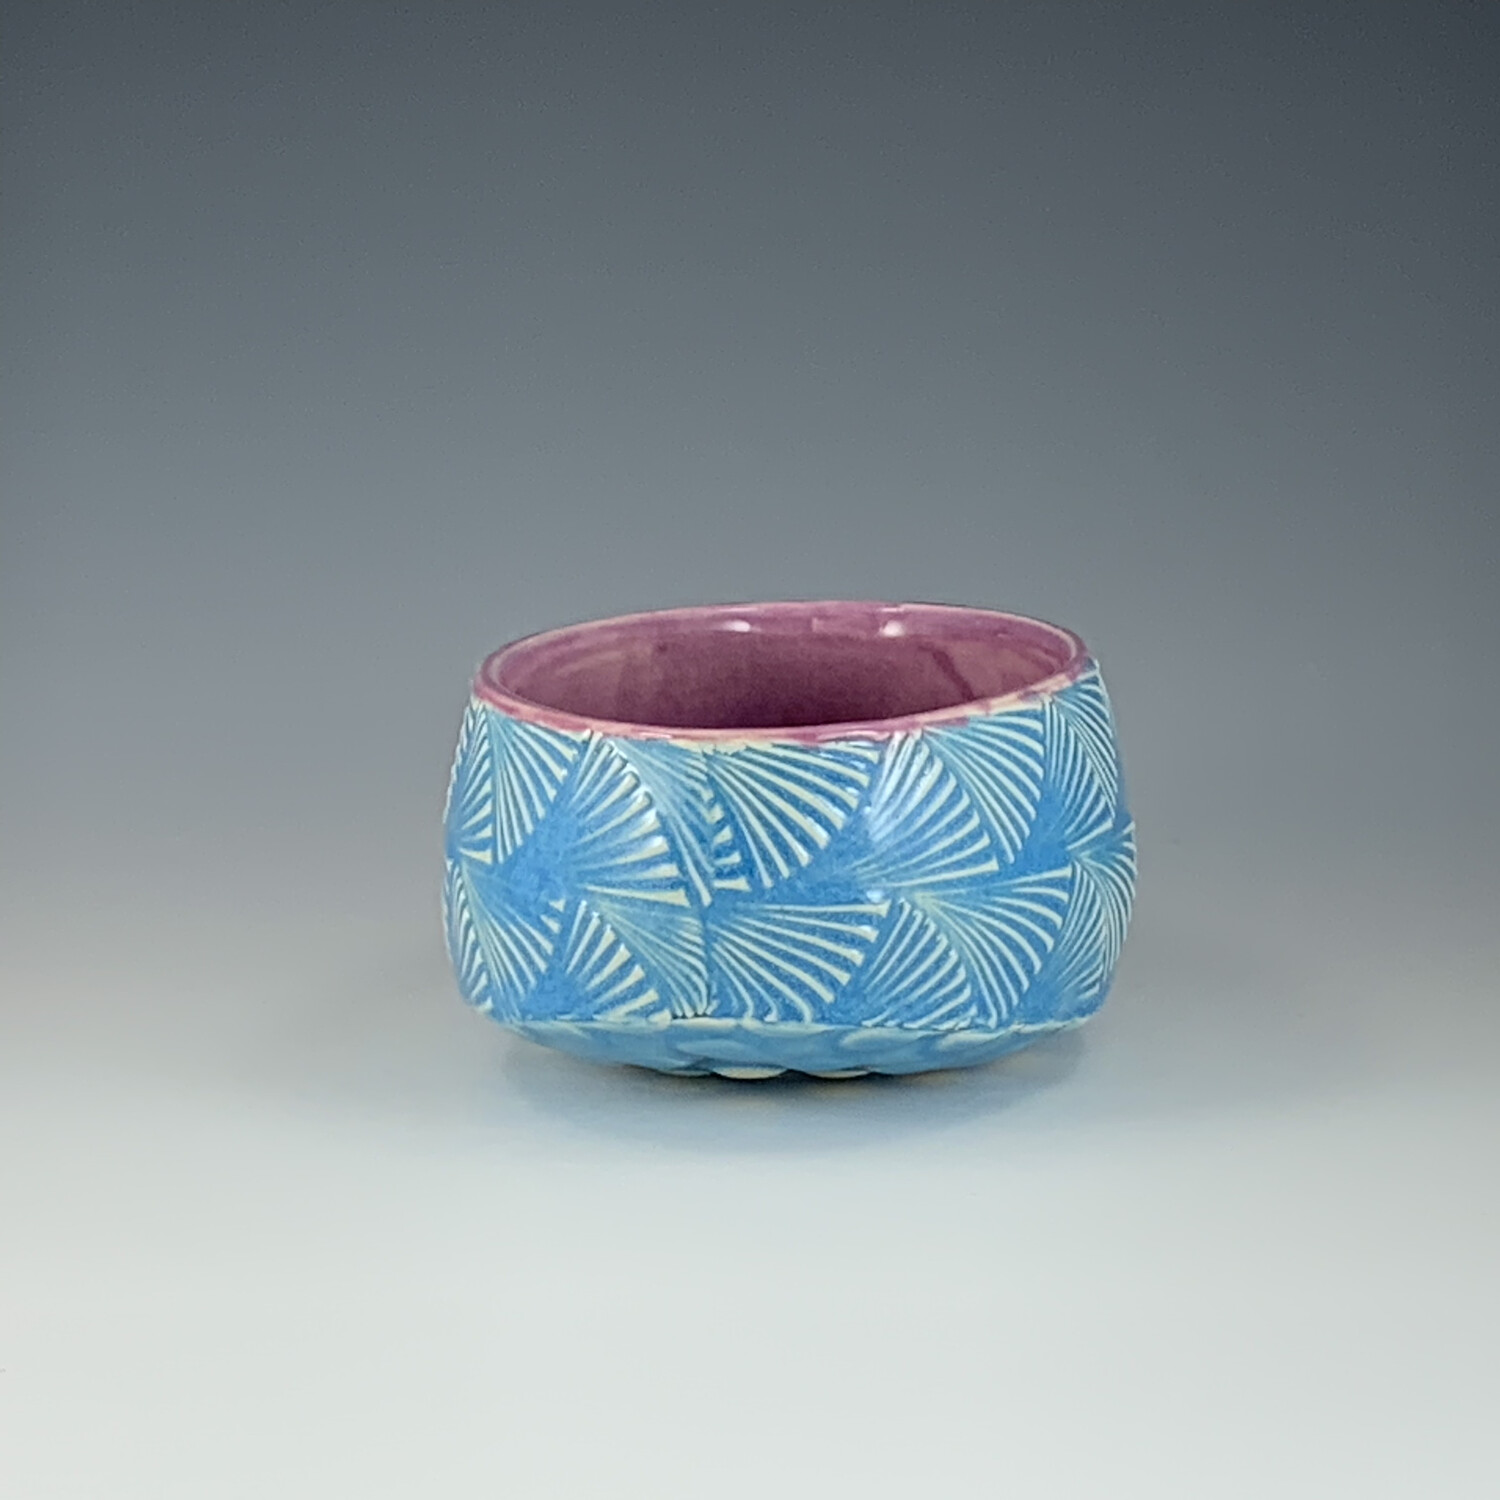 Small Oval Bowl in gum & lake ice blue